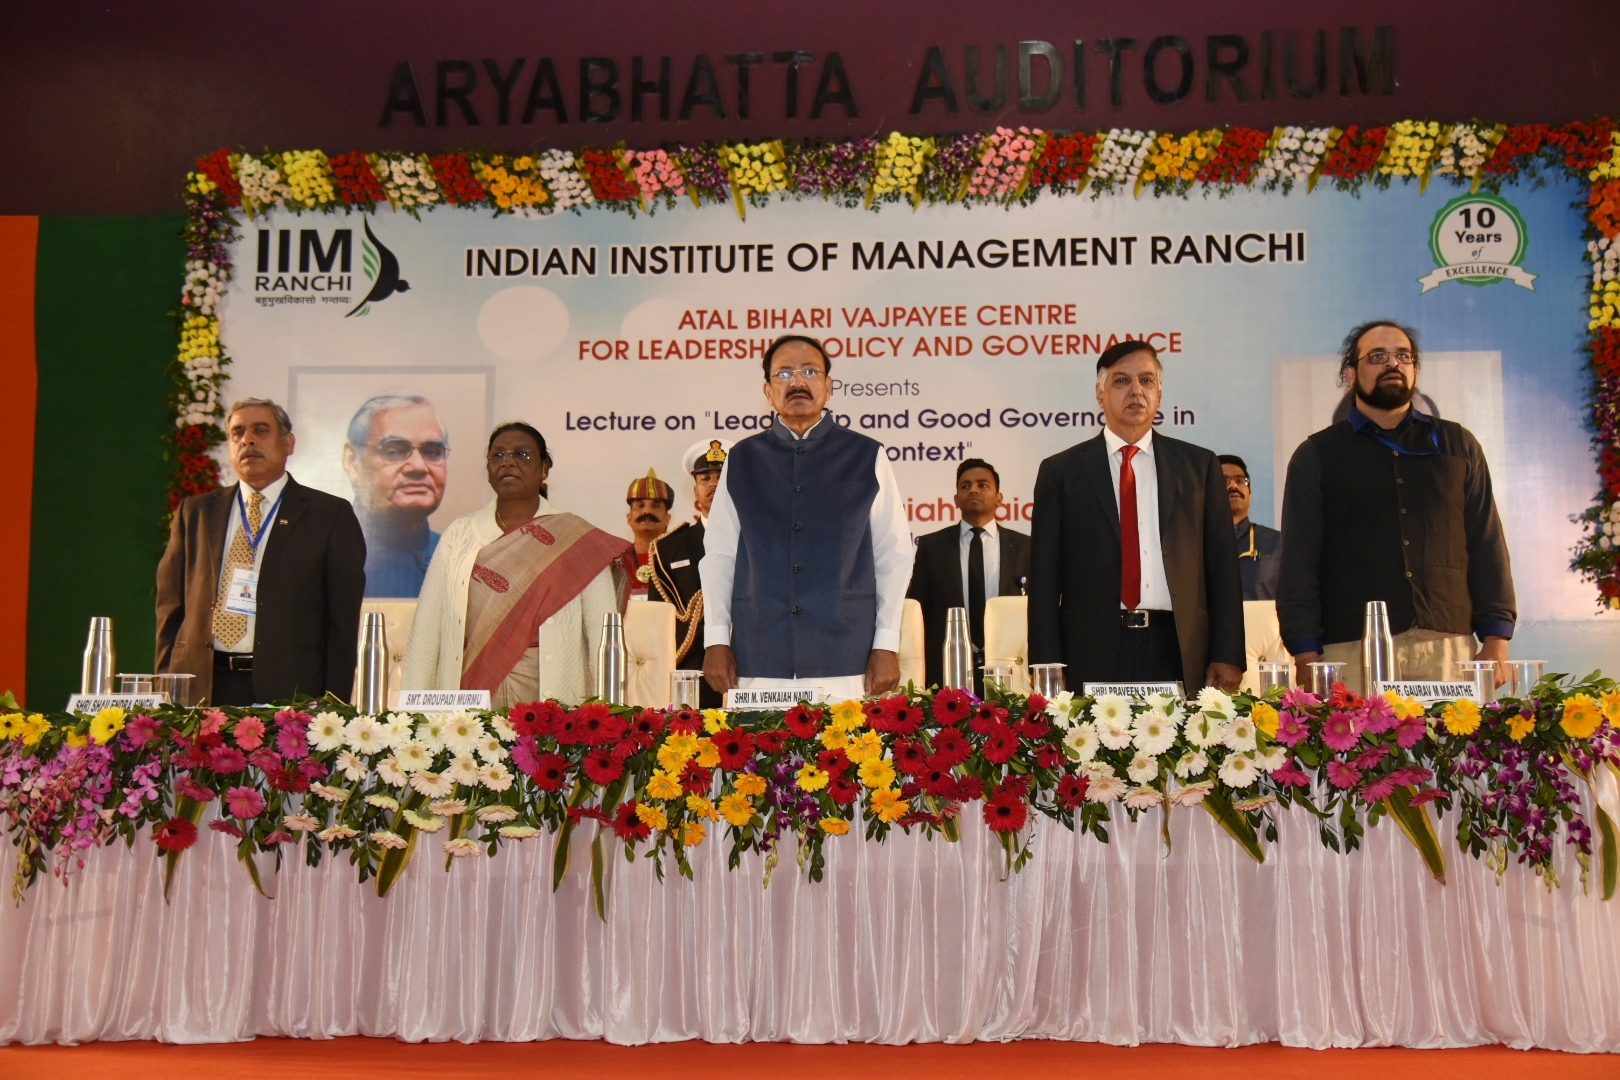 The Vice President, Shri M. Venkaiah Naidu on the occasion of the lecture on 'Leadership and Good Governance in Indian Context', organised by Atal Bihari Vajpayee Centre for Leadership, Policy and Governance, IIM in Ranchi, on 16 February, 2020.